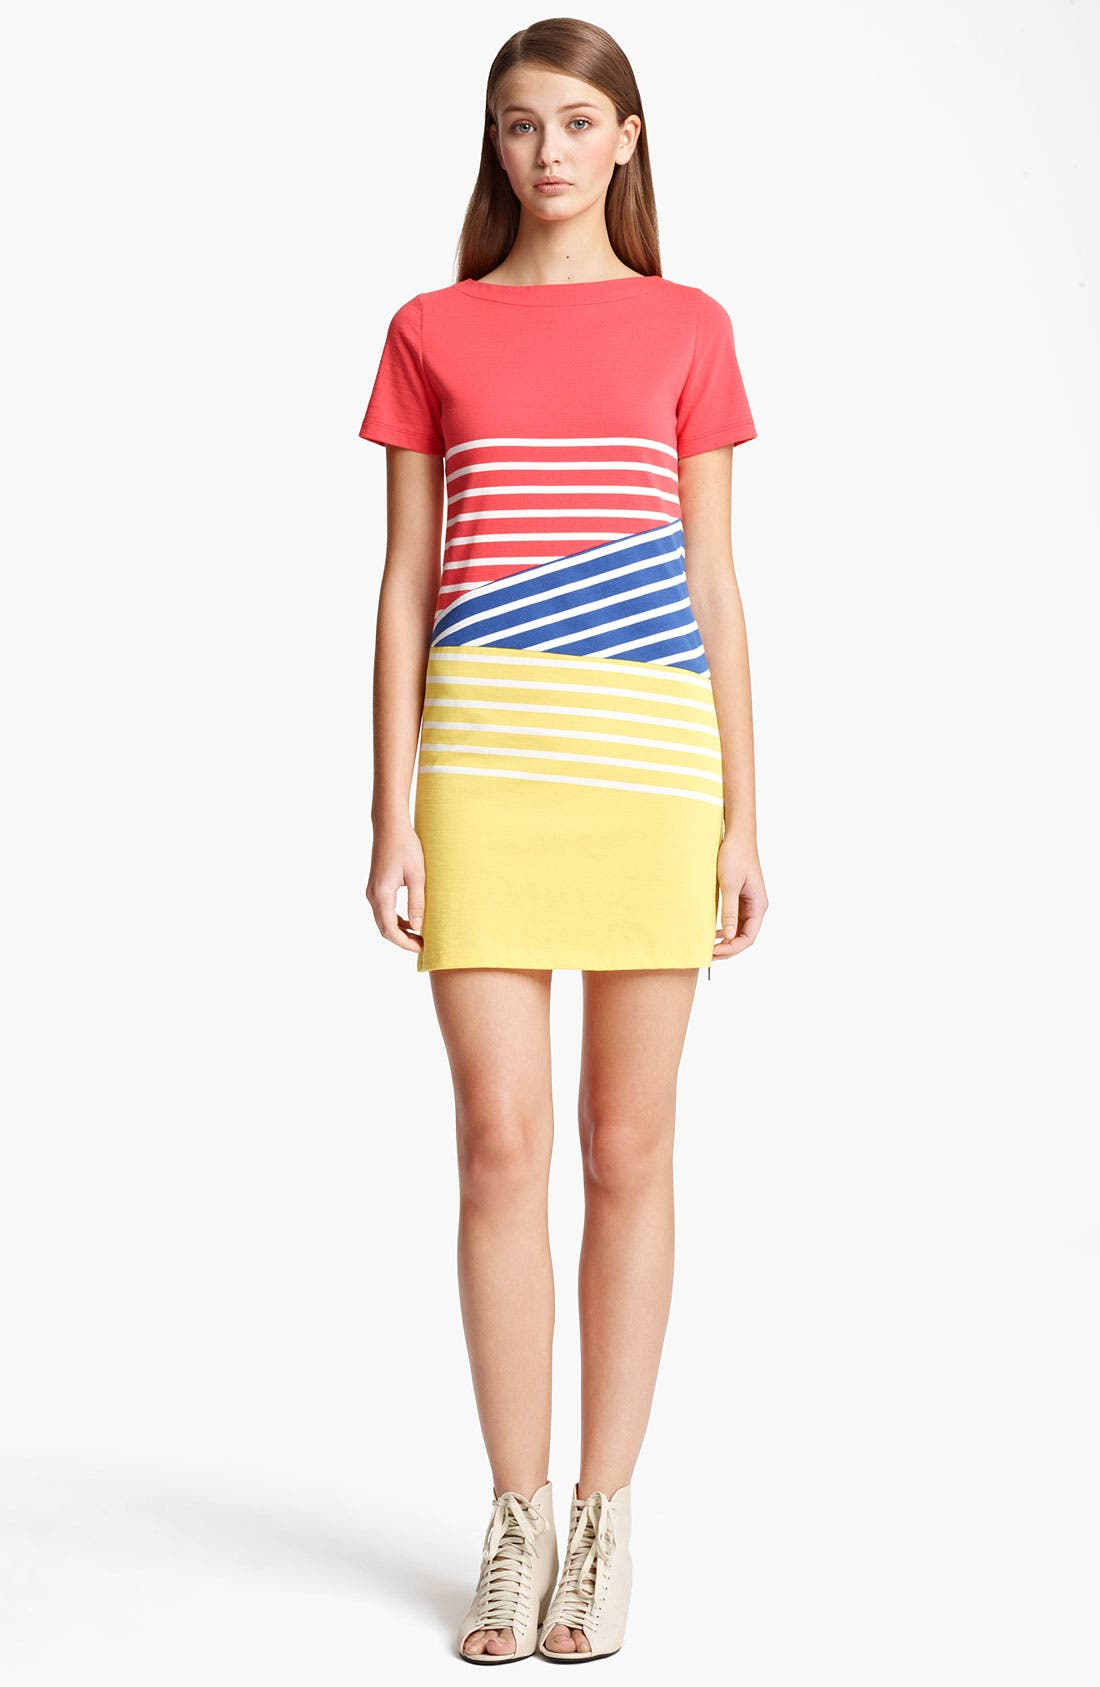 Alternate Image 1 Selected - Band of Outsiders 'Breton' Stripe Dress